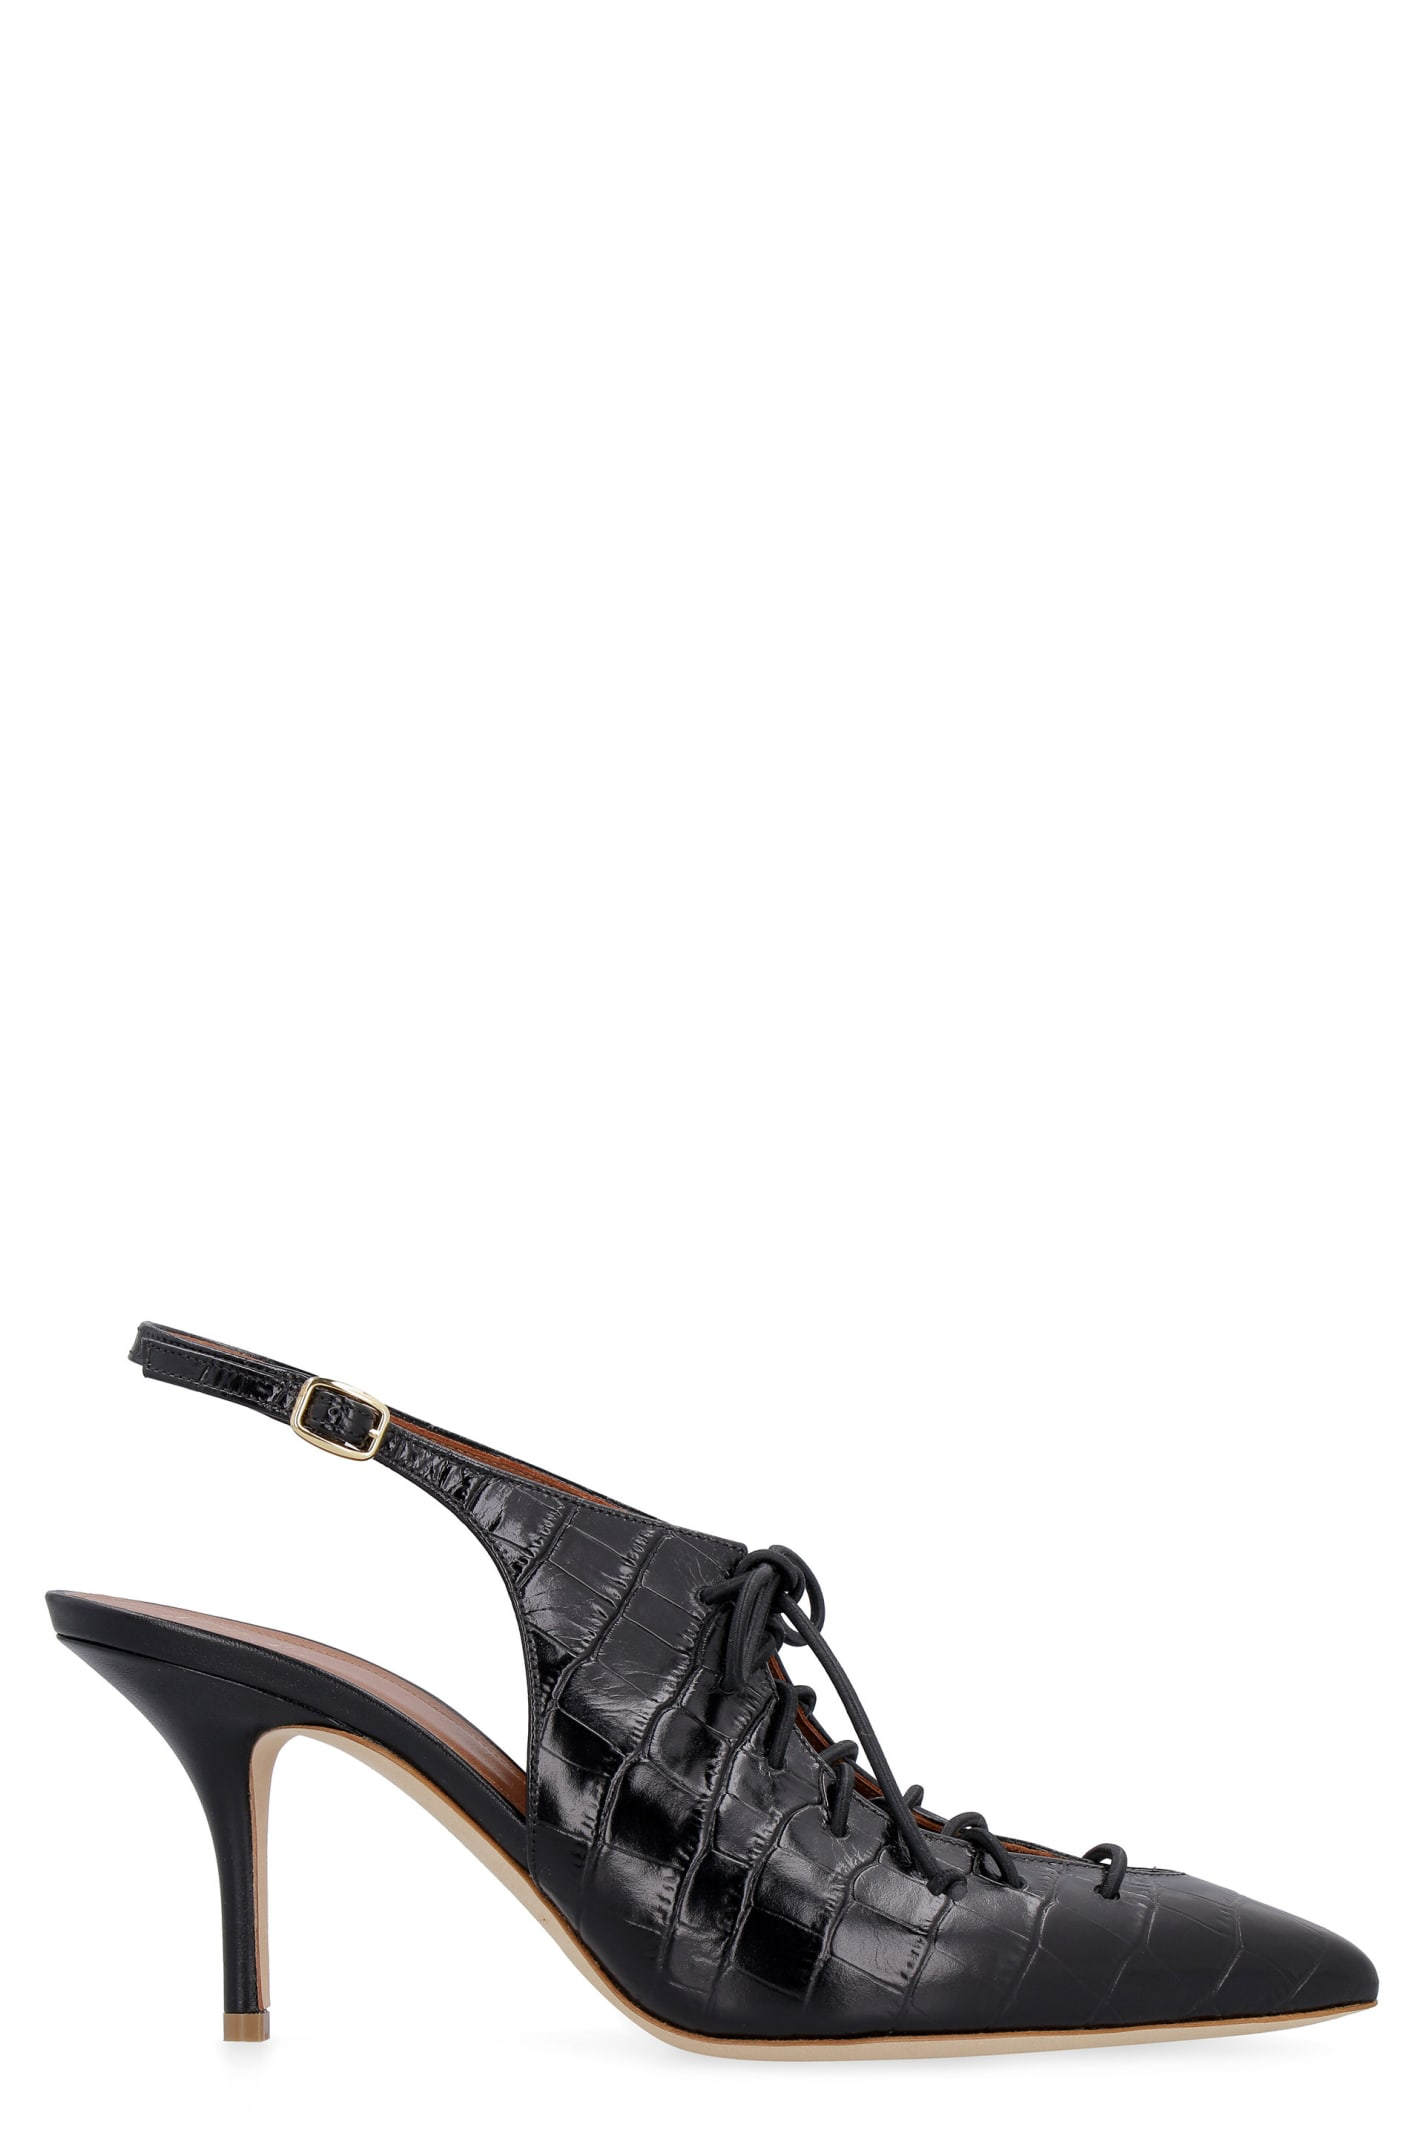 Malone Souliers Alessandra Leather Slingback Pumps